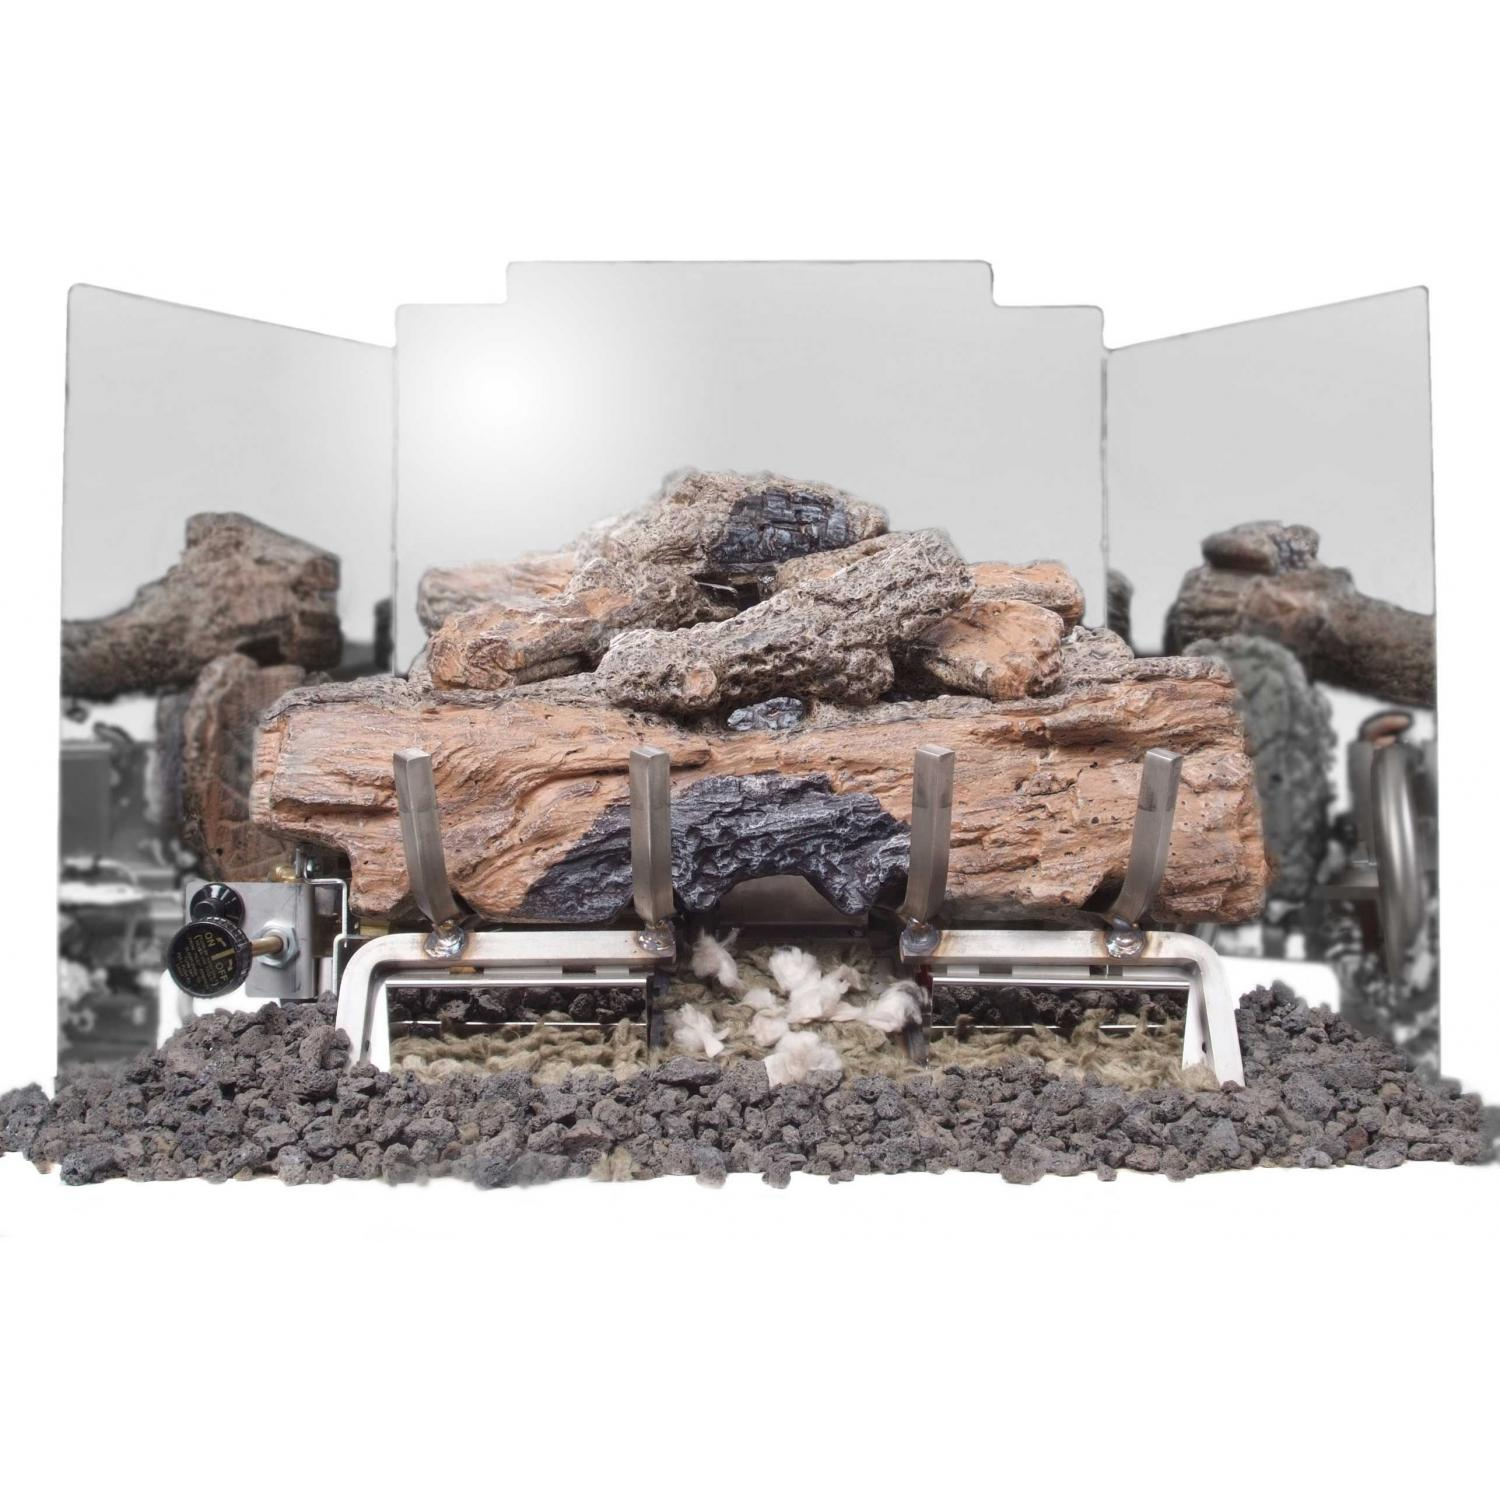 Peterson Gas Logs 18 Inch 3-Fold Contemporary Polished Stainless Steel Fireback